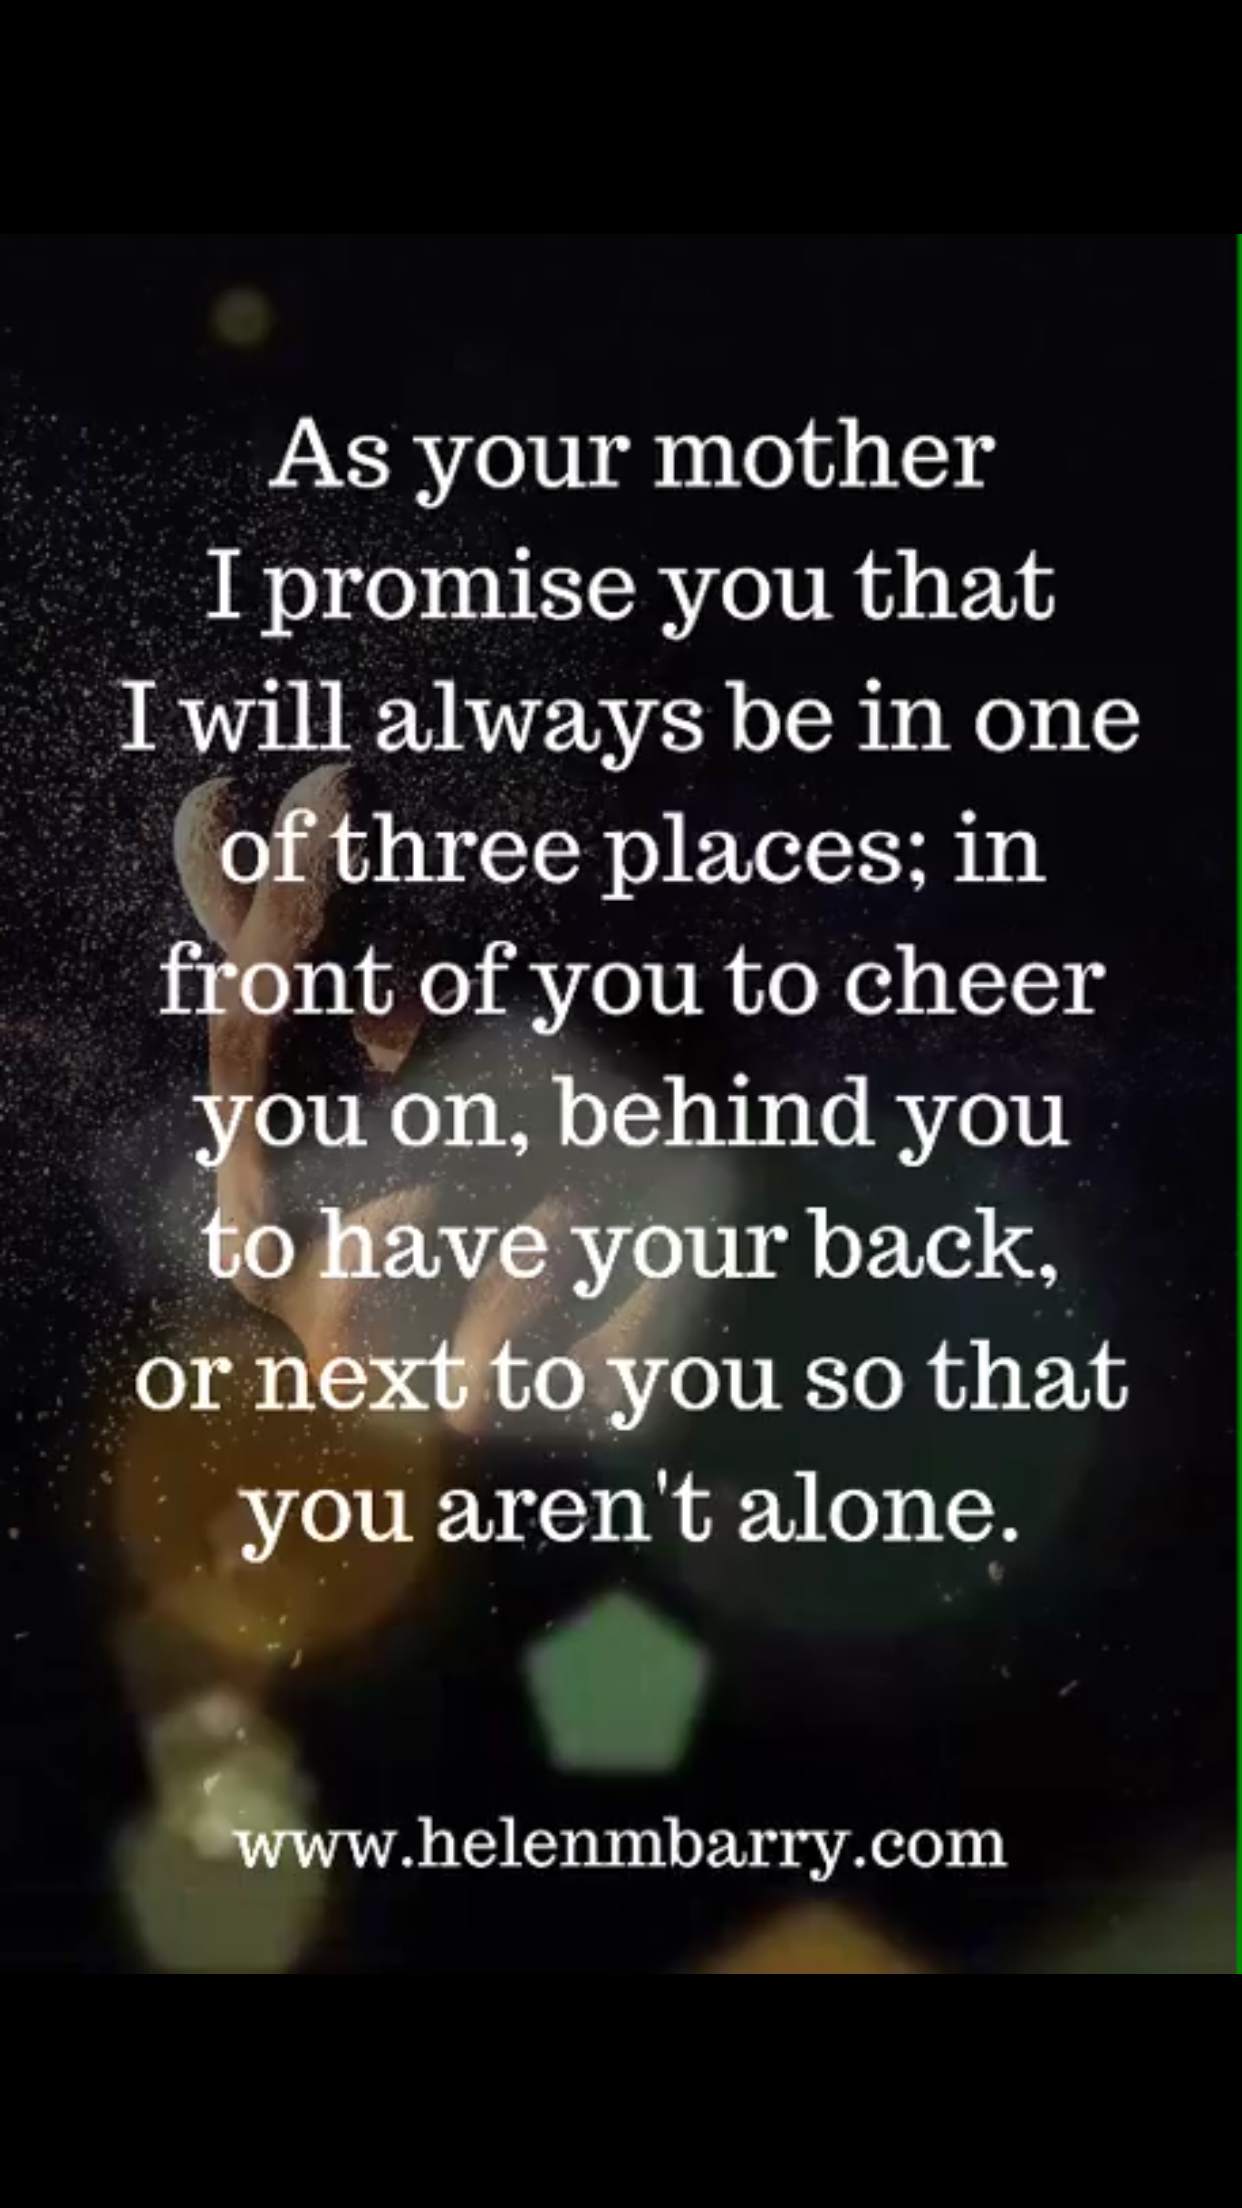 Pin by Beth Overly on Mom | Senior quotes inspirational ...